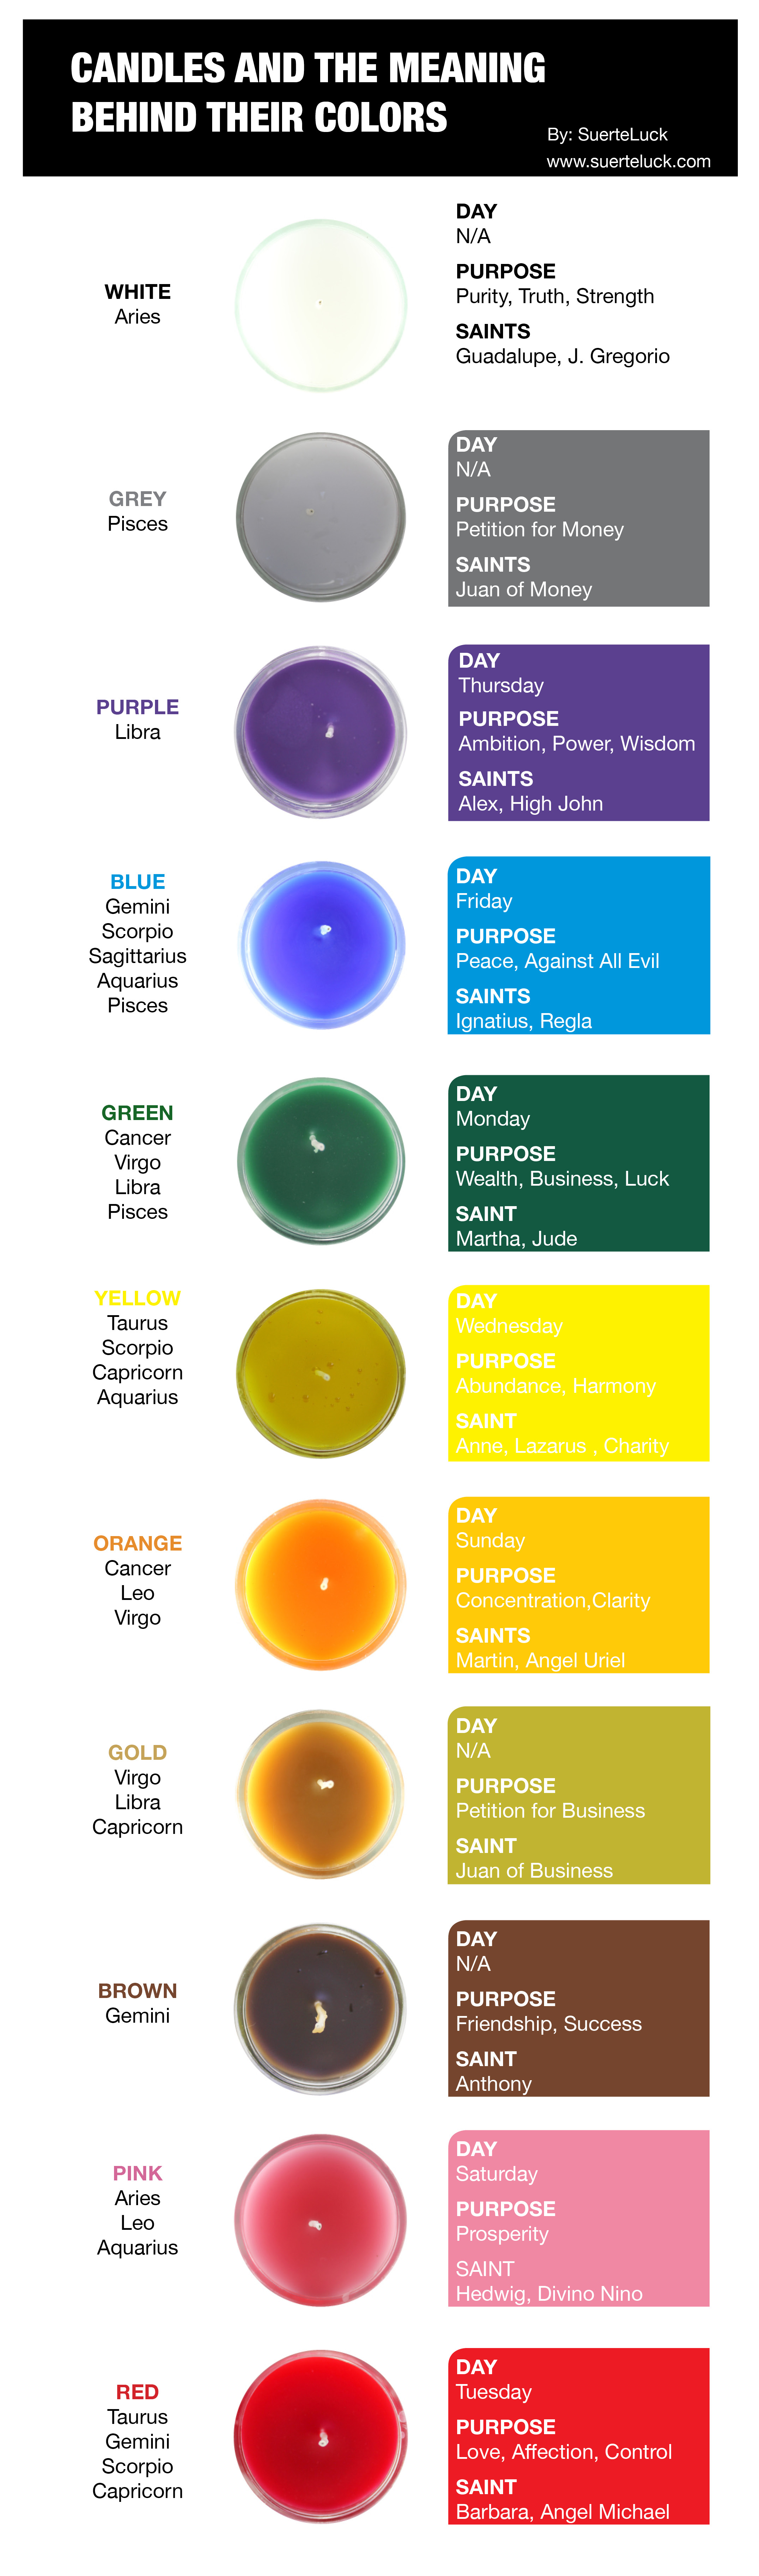 Prayer Candles And The Meaning Behind Their Colors - SUERTE·LUCK